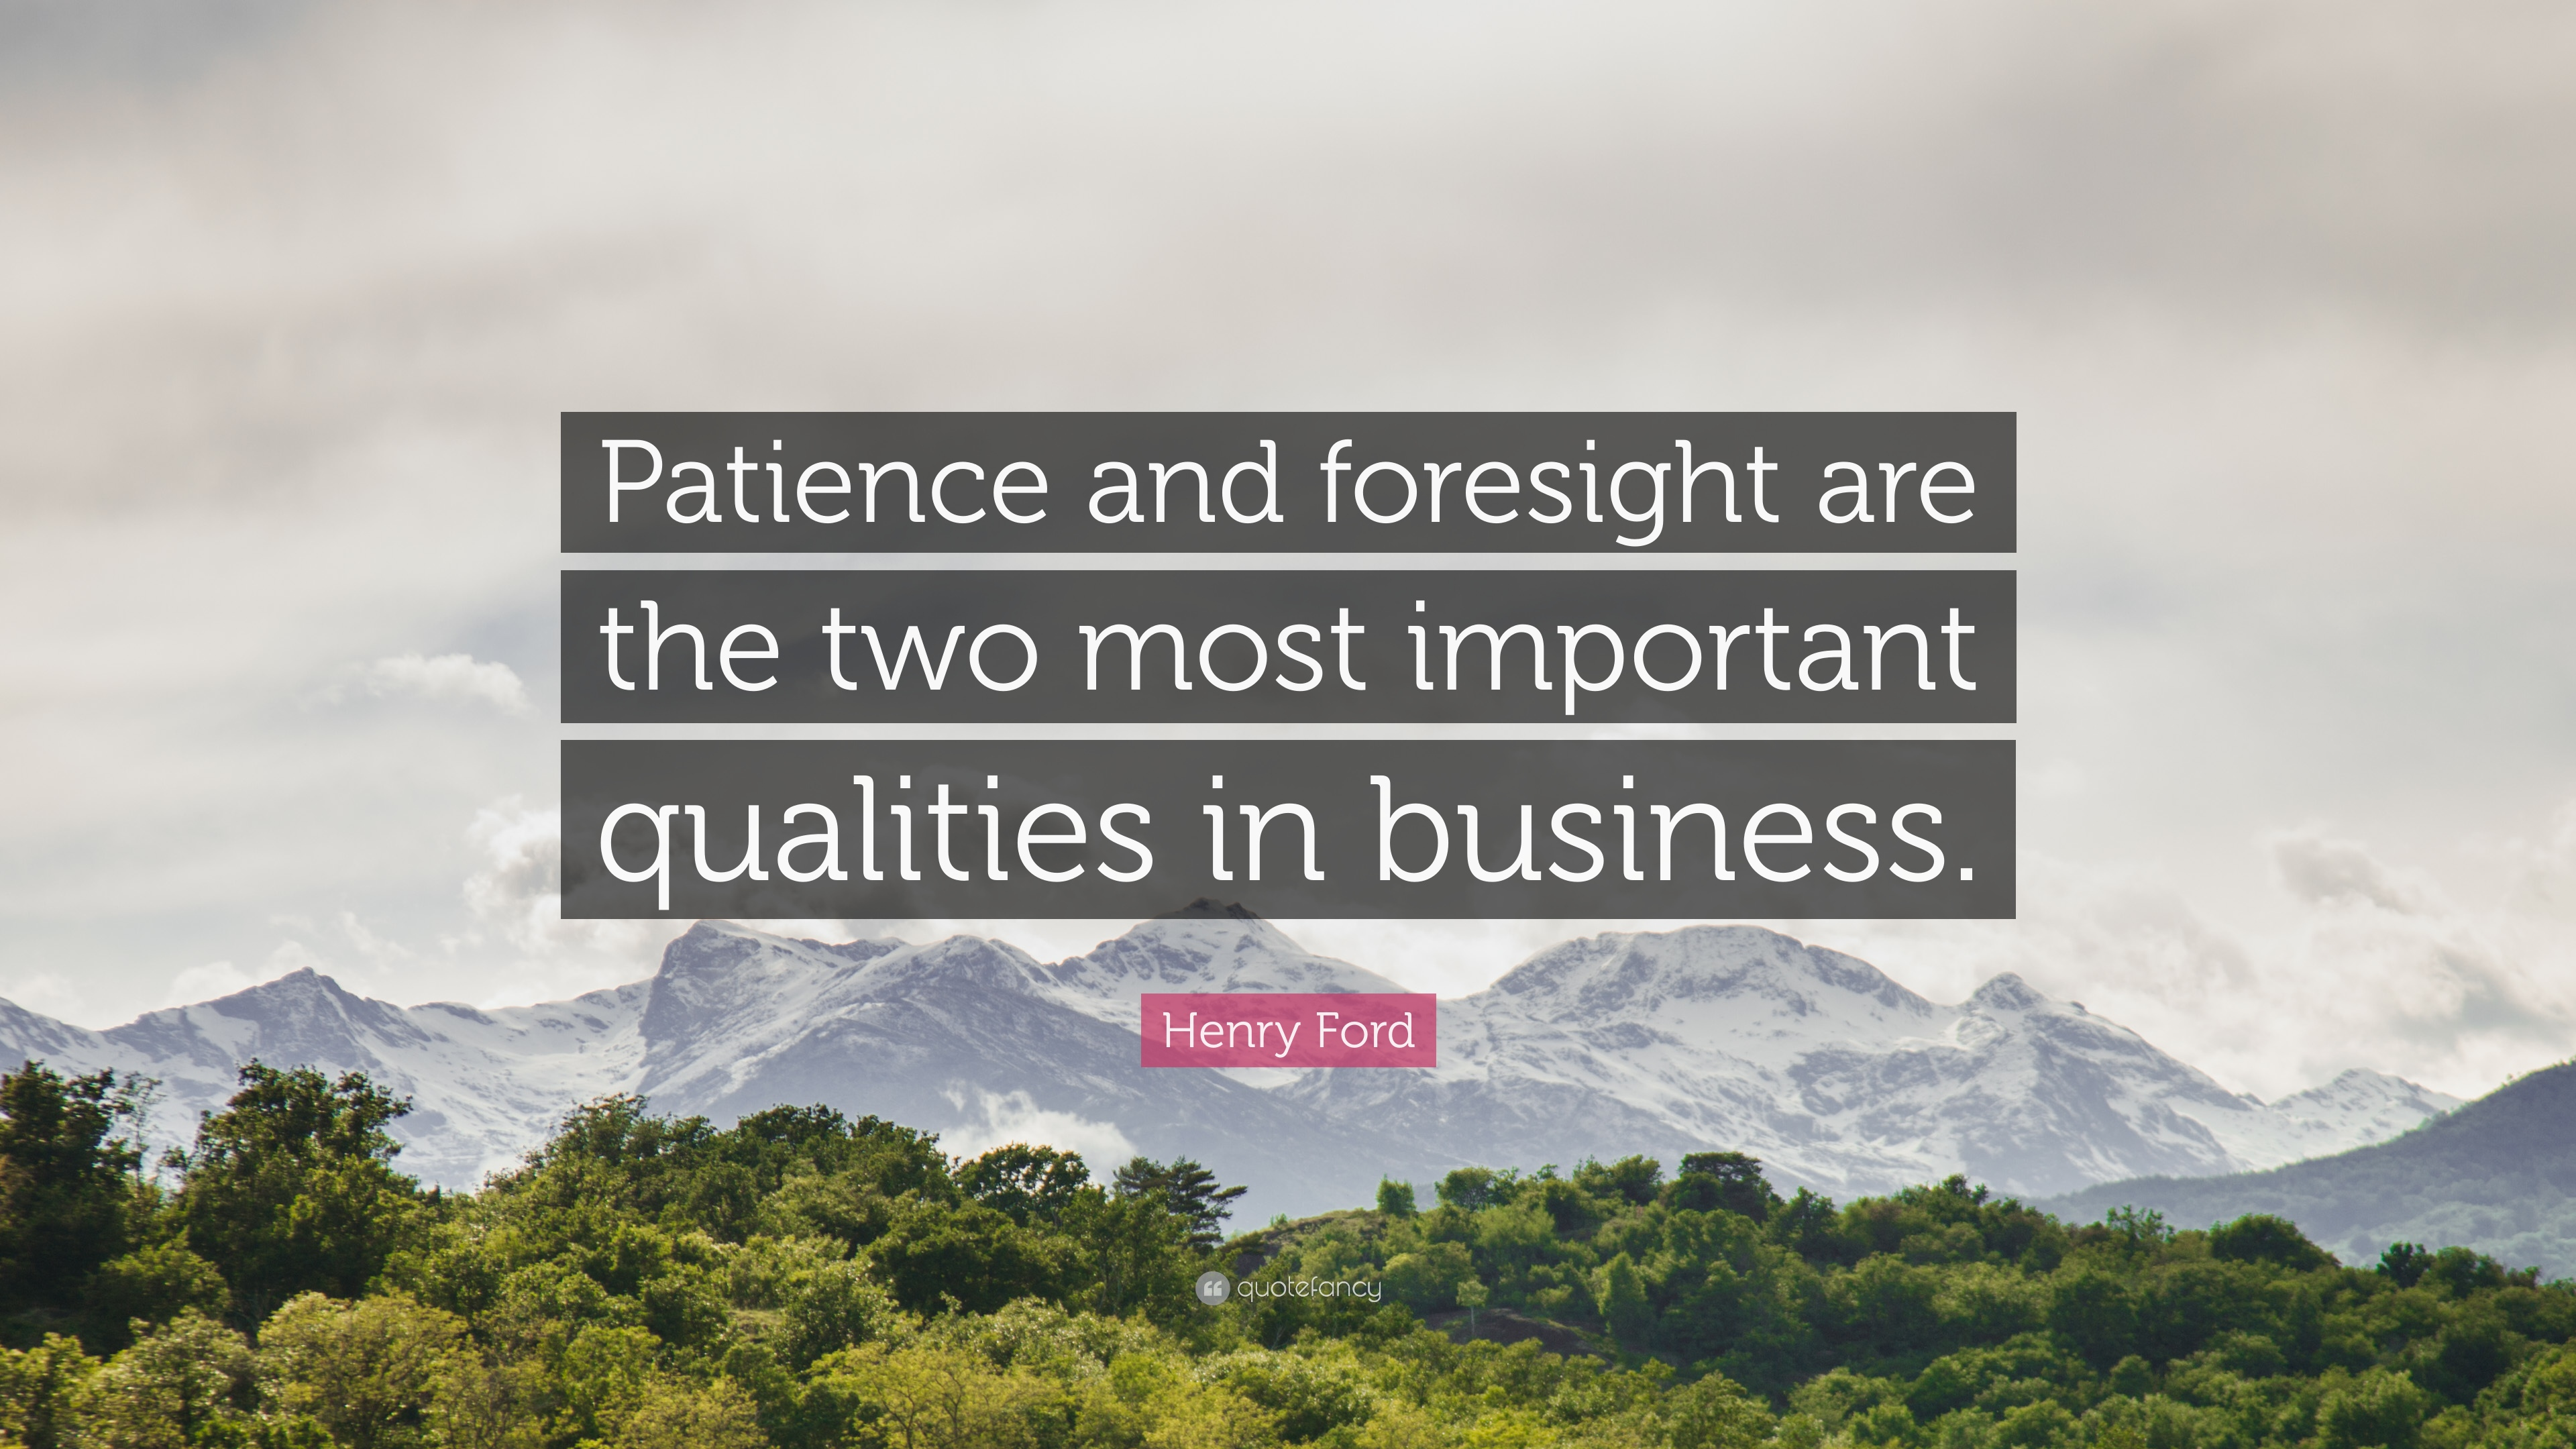 qualities of henry ford